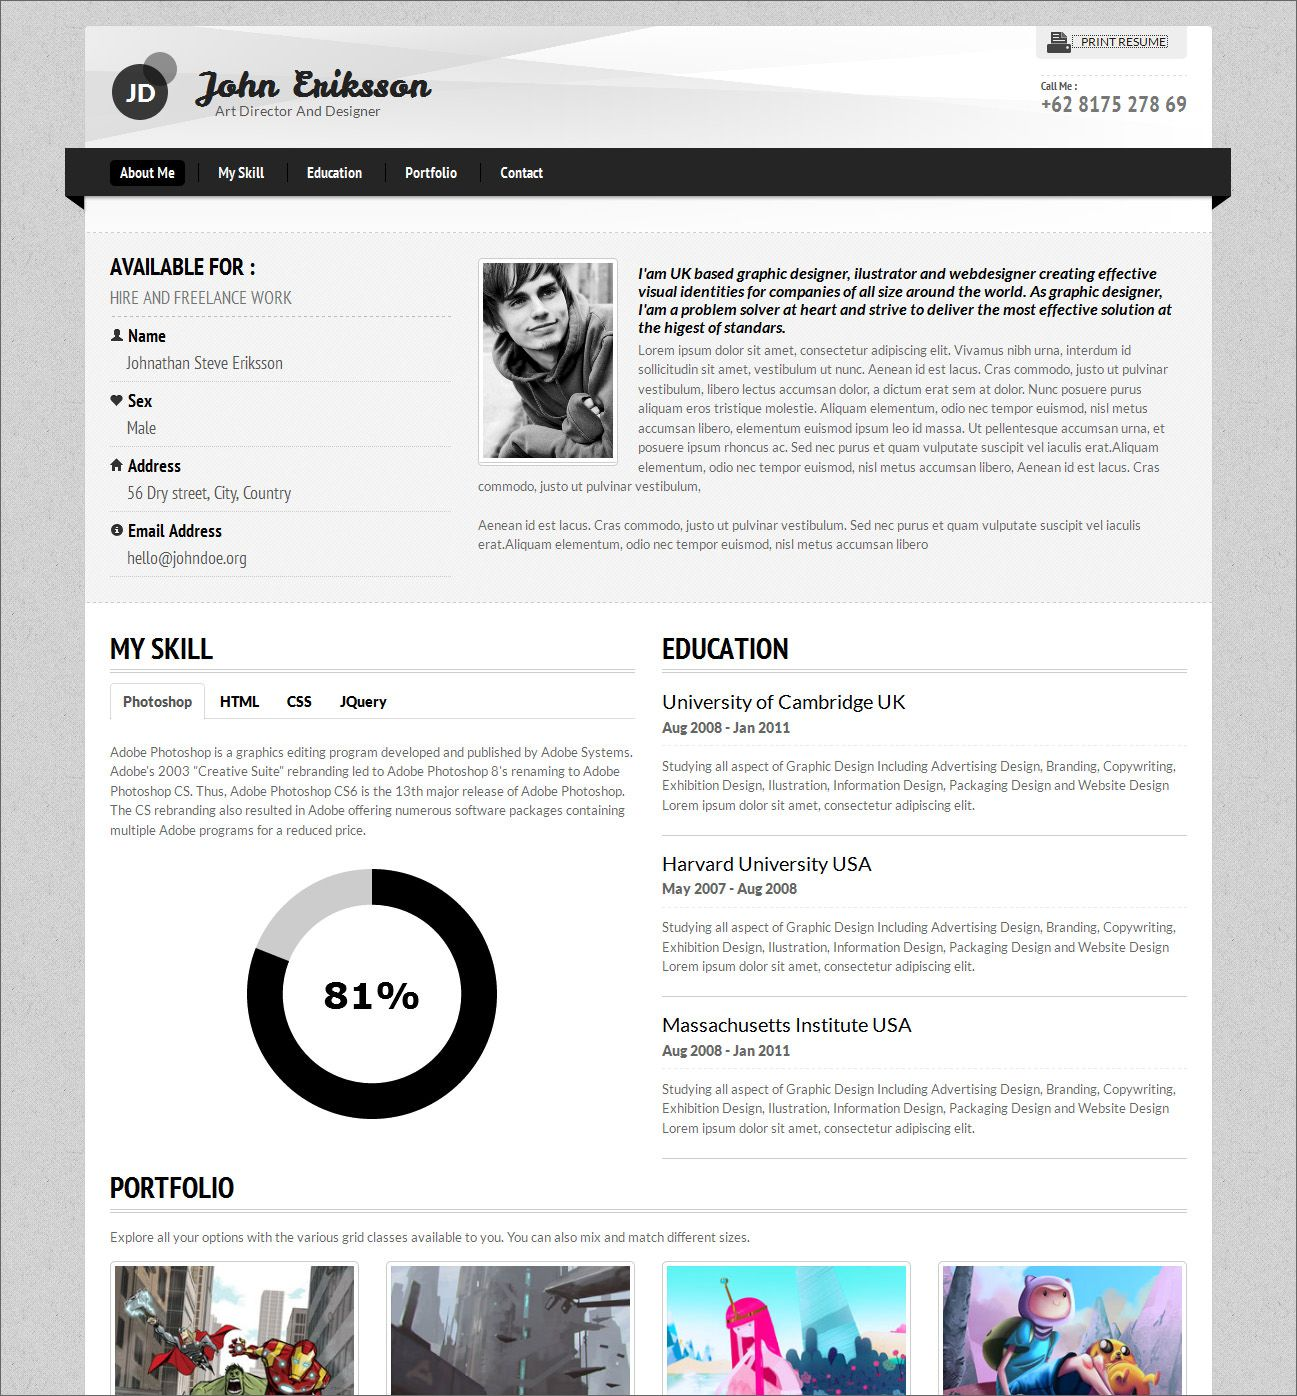 Architecture Design Resumes 7 creative online cv resume template for web, graphic designer